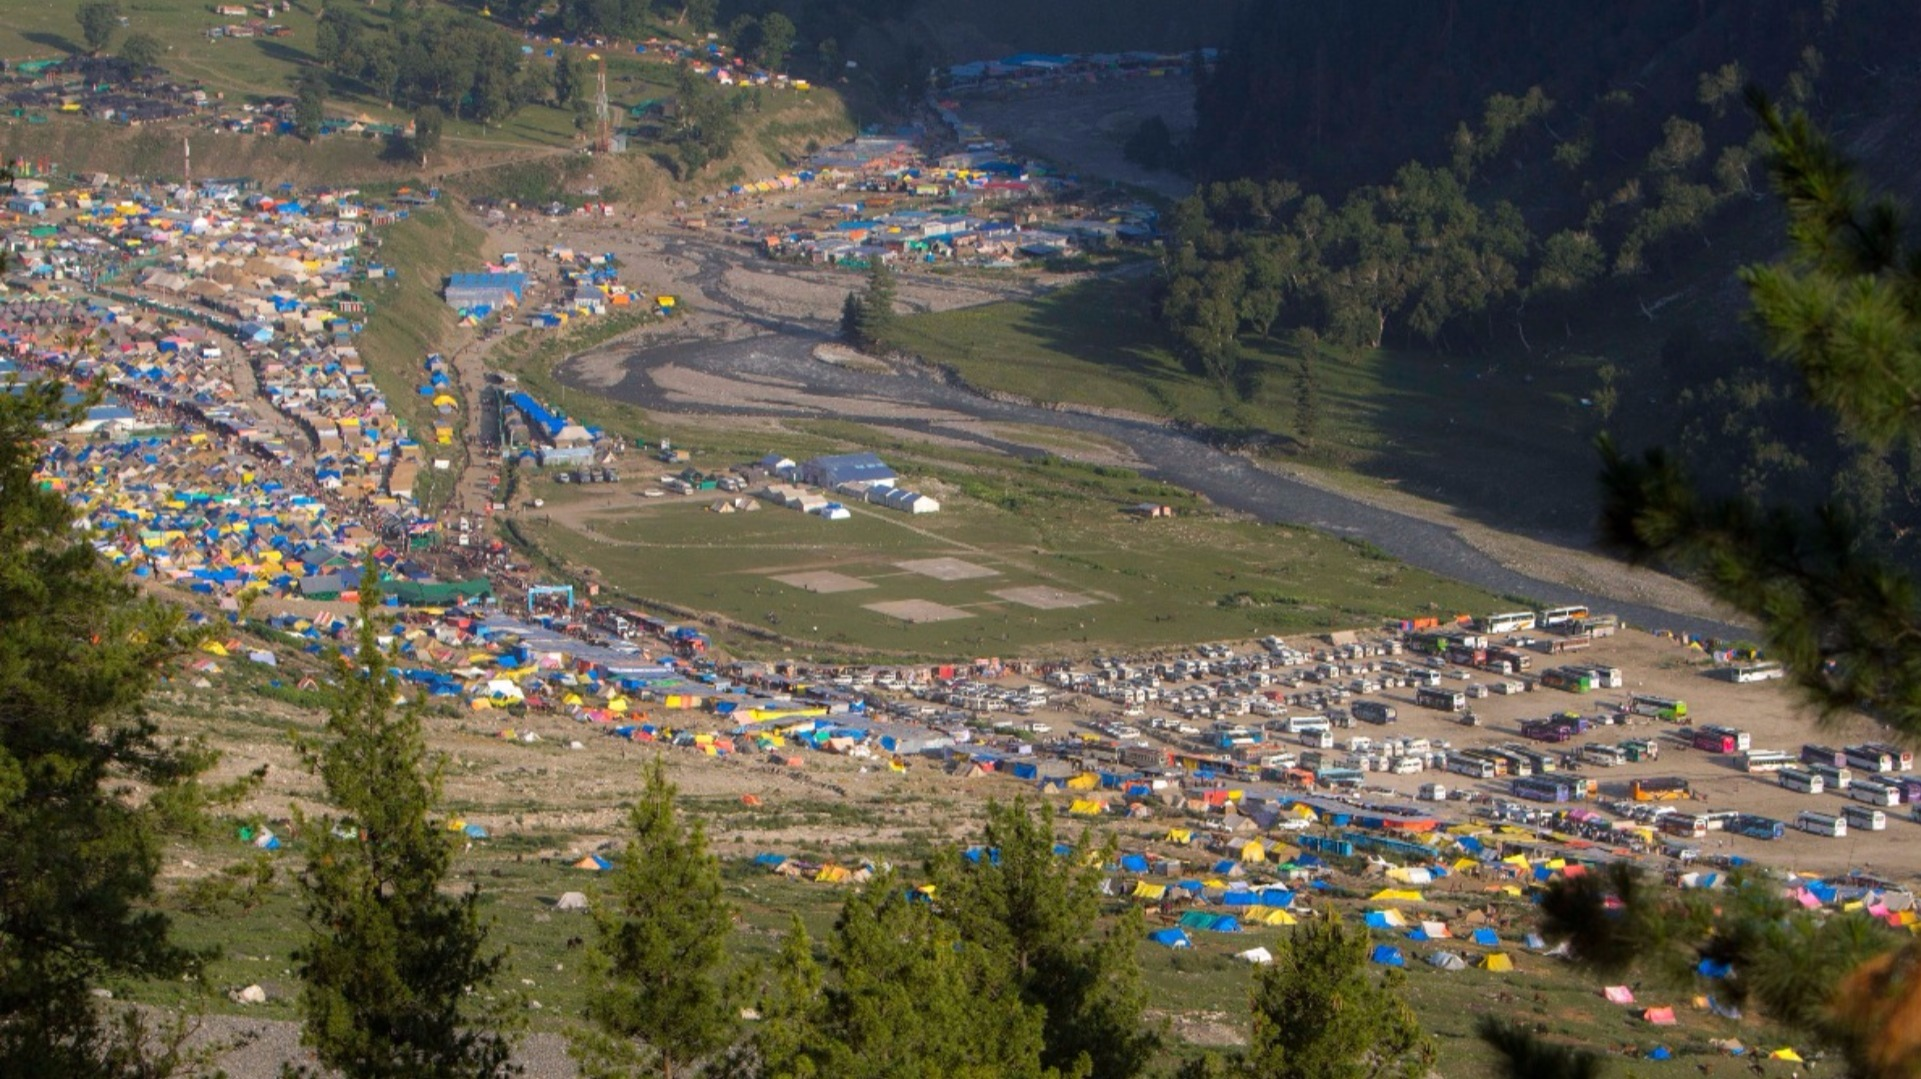 1782 pilgrims leave Jammu for Amarnath Yatra